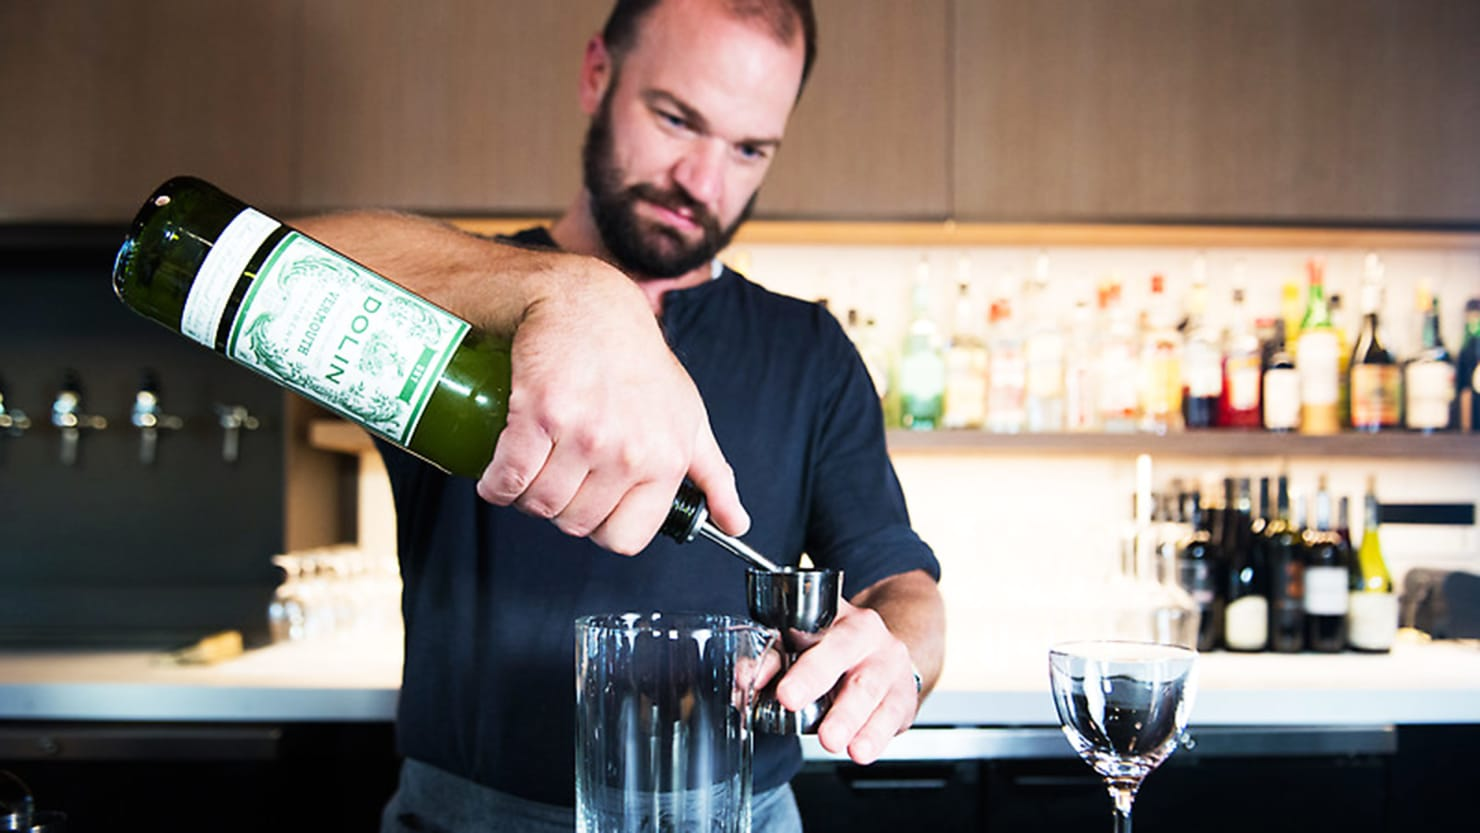 I want to be a bartender